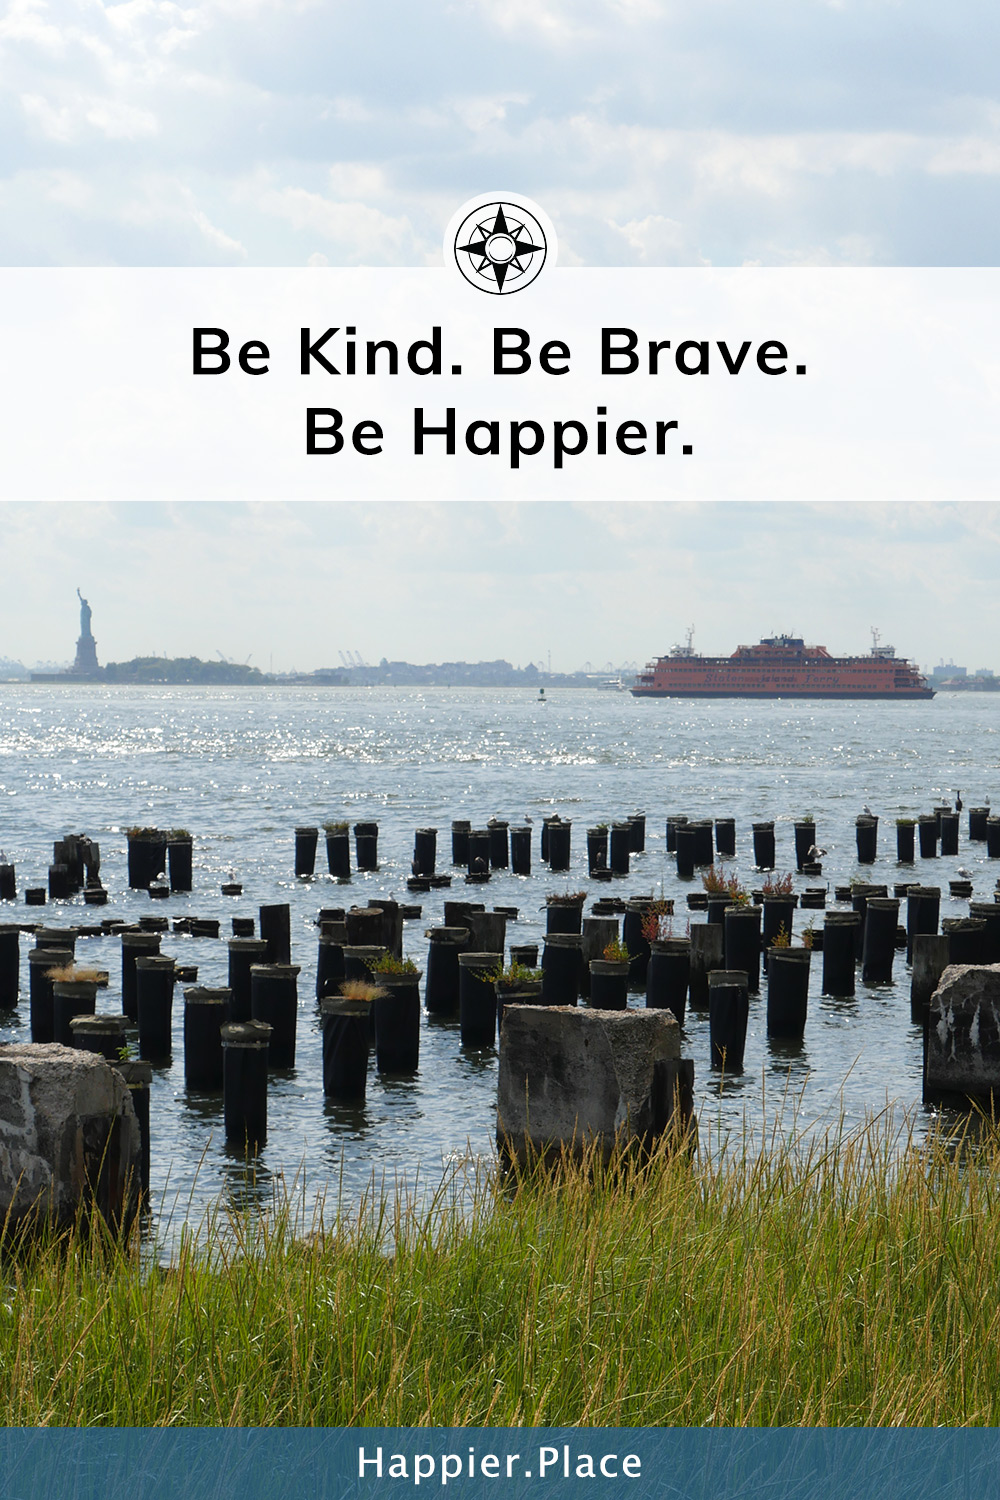 To be kind and brave as we face others and ourselves may just be the secret to a happier, more fair and less violent world. #HappierPlace